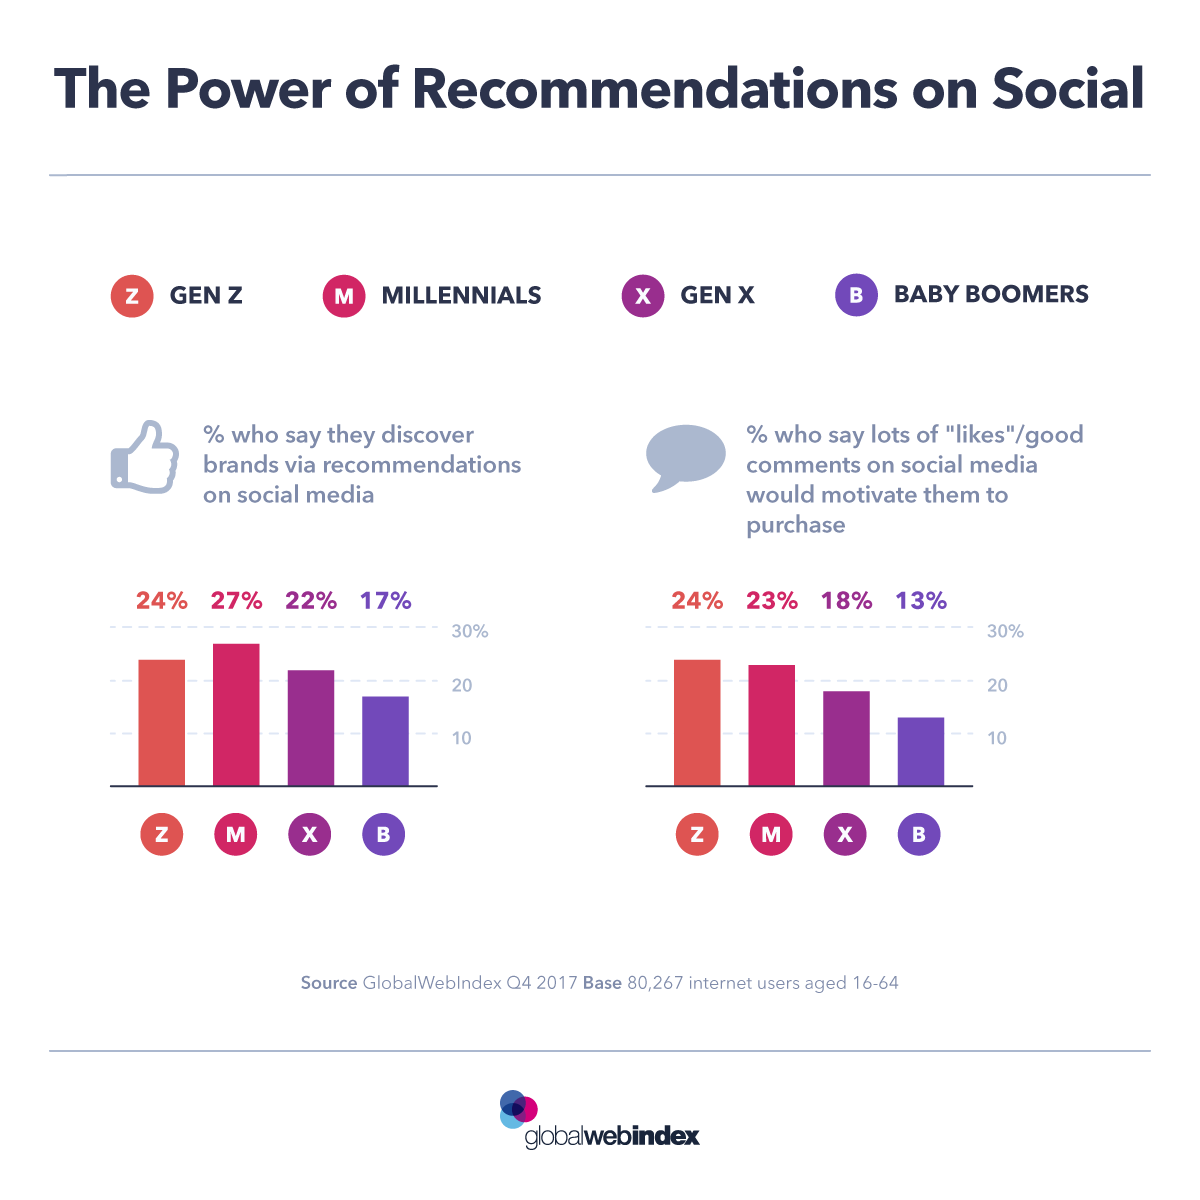 The Power of Recommendations on Social Media